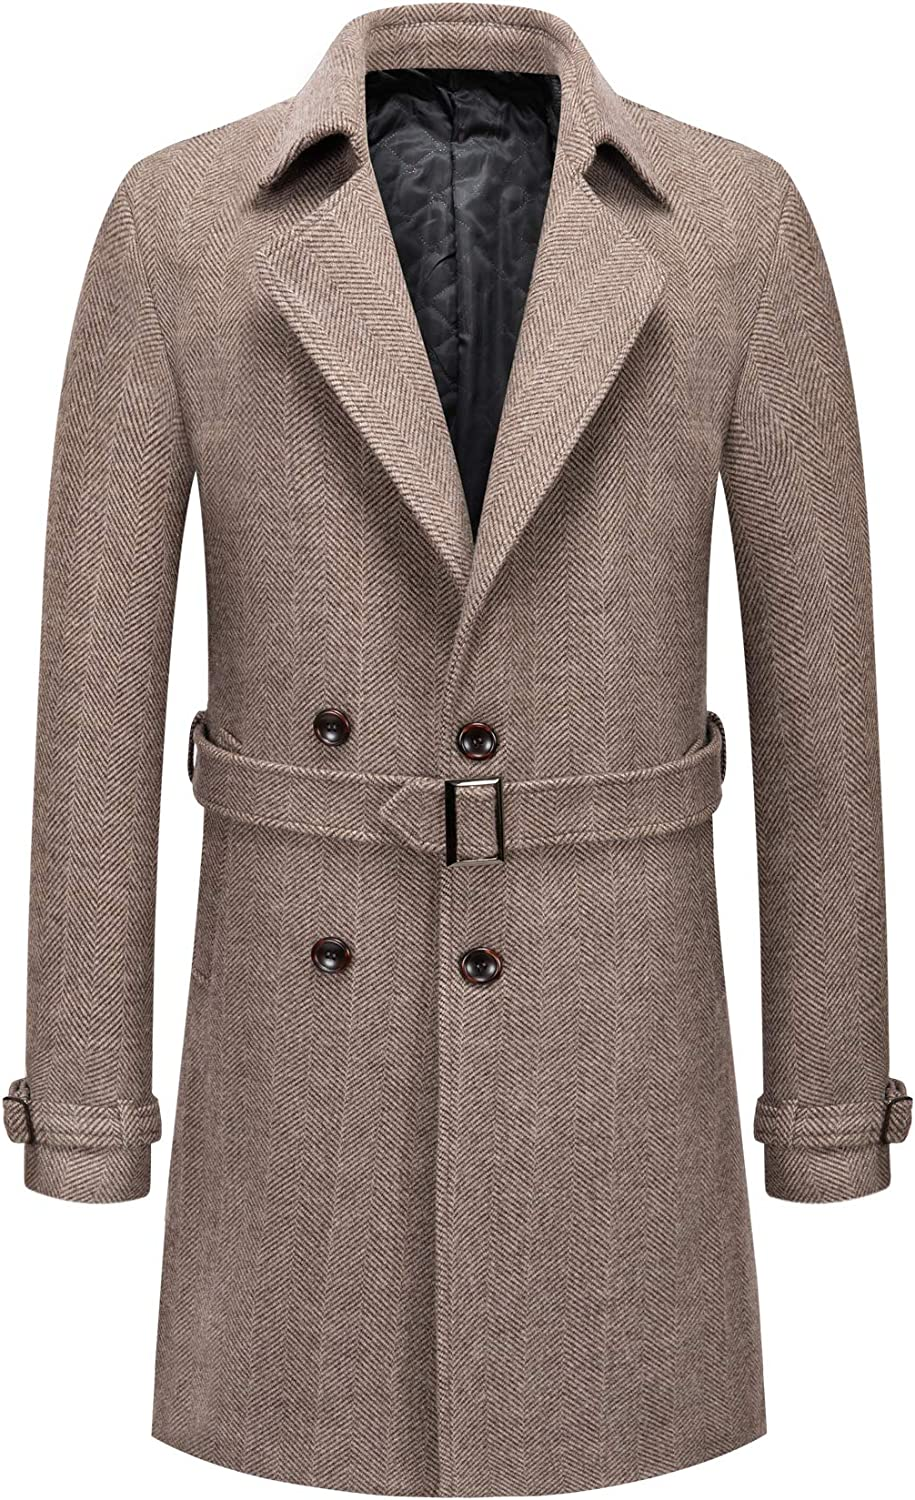 chouyatou Men's Gentle Notched Collar Double Breasted Slim Splited Wool Blend Trench Coat with Belt